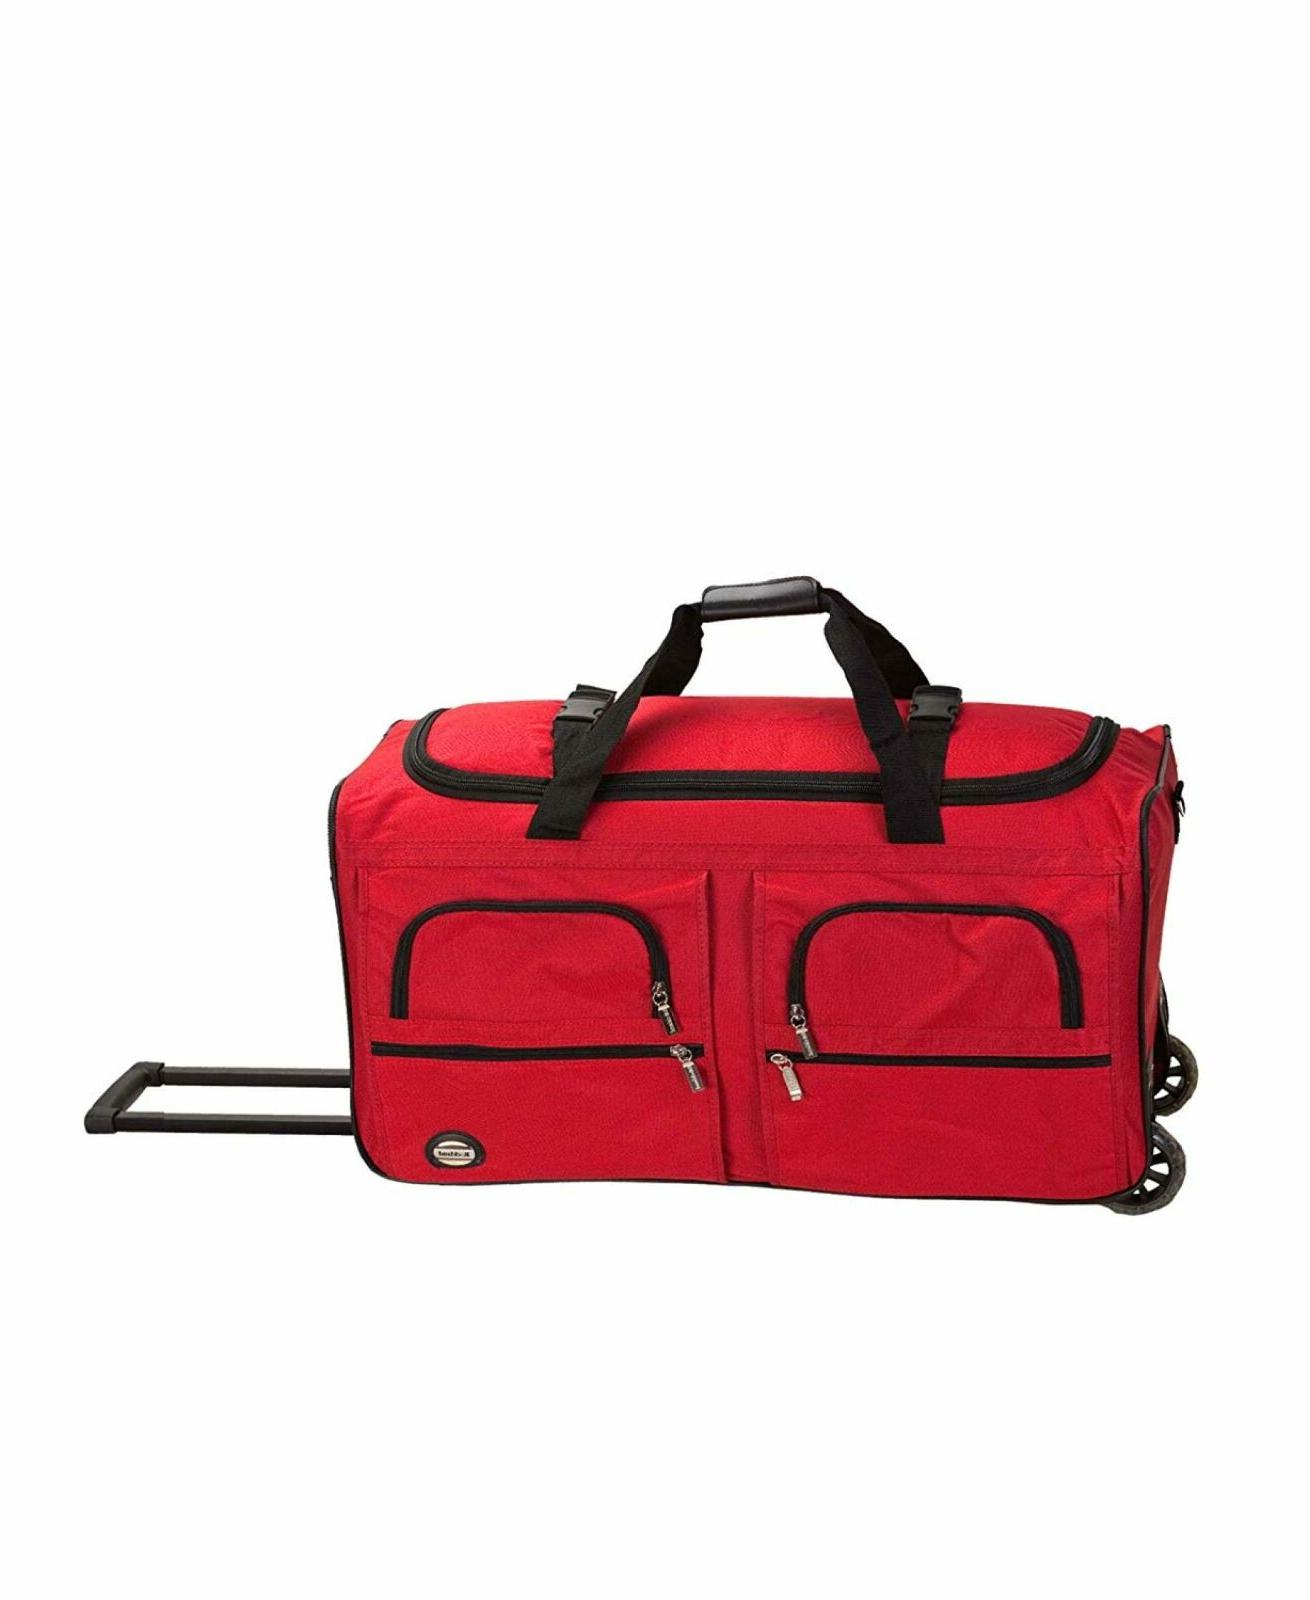 luggage 36 inch rolling duffle bag red